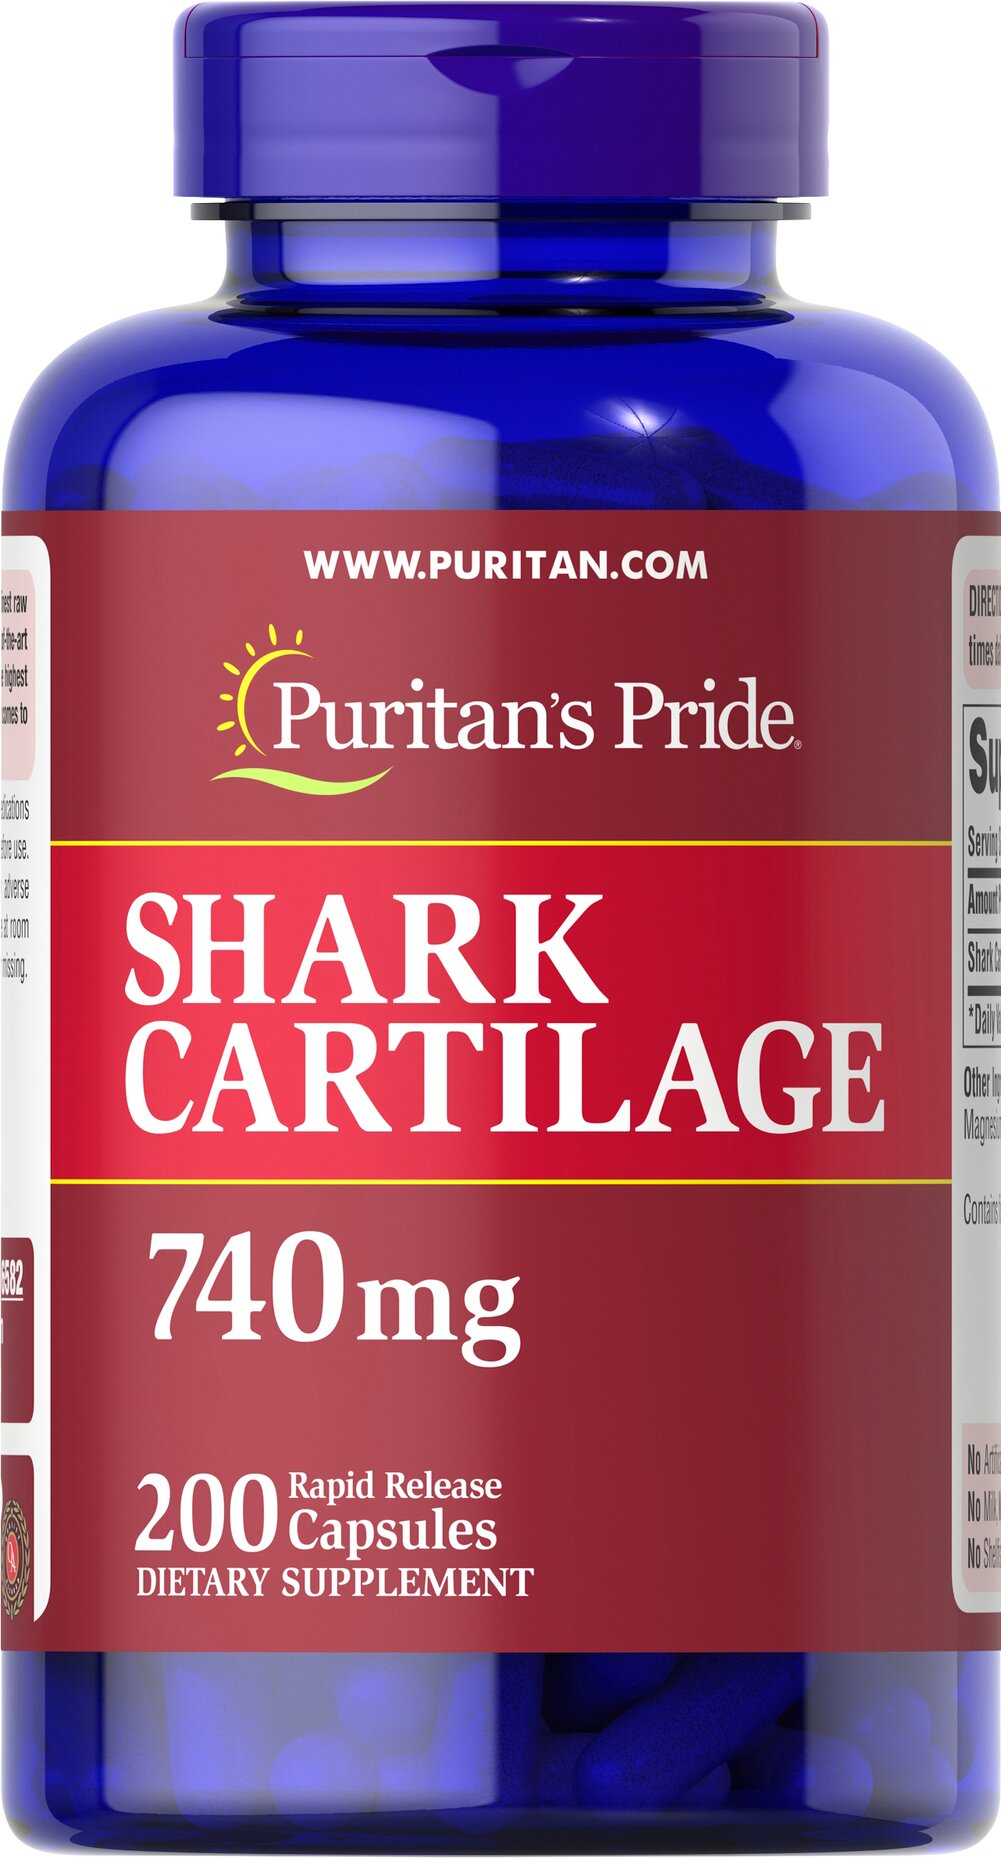 Shark Cartilage 740 mg <p>Natural joint support straight from the sea!</p><p> Shark Cartilage is a natural source of <b>Chondroitin Sulfate</b>, which is a key structural component in human cartilage.**<p> Chondroitin also plays an important role in the maintenance of joint cartilage.** </p><p>Each serving delivers <b>740 mg shark cartilage powder</b>.</p><p> Adults can take one capsule four to six times daily.</p> 200